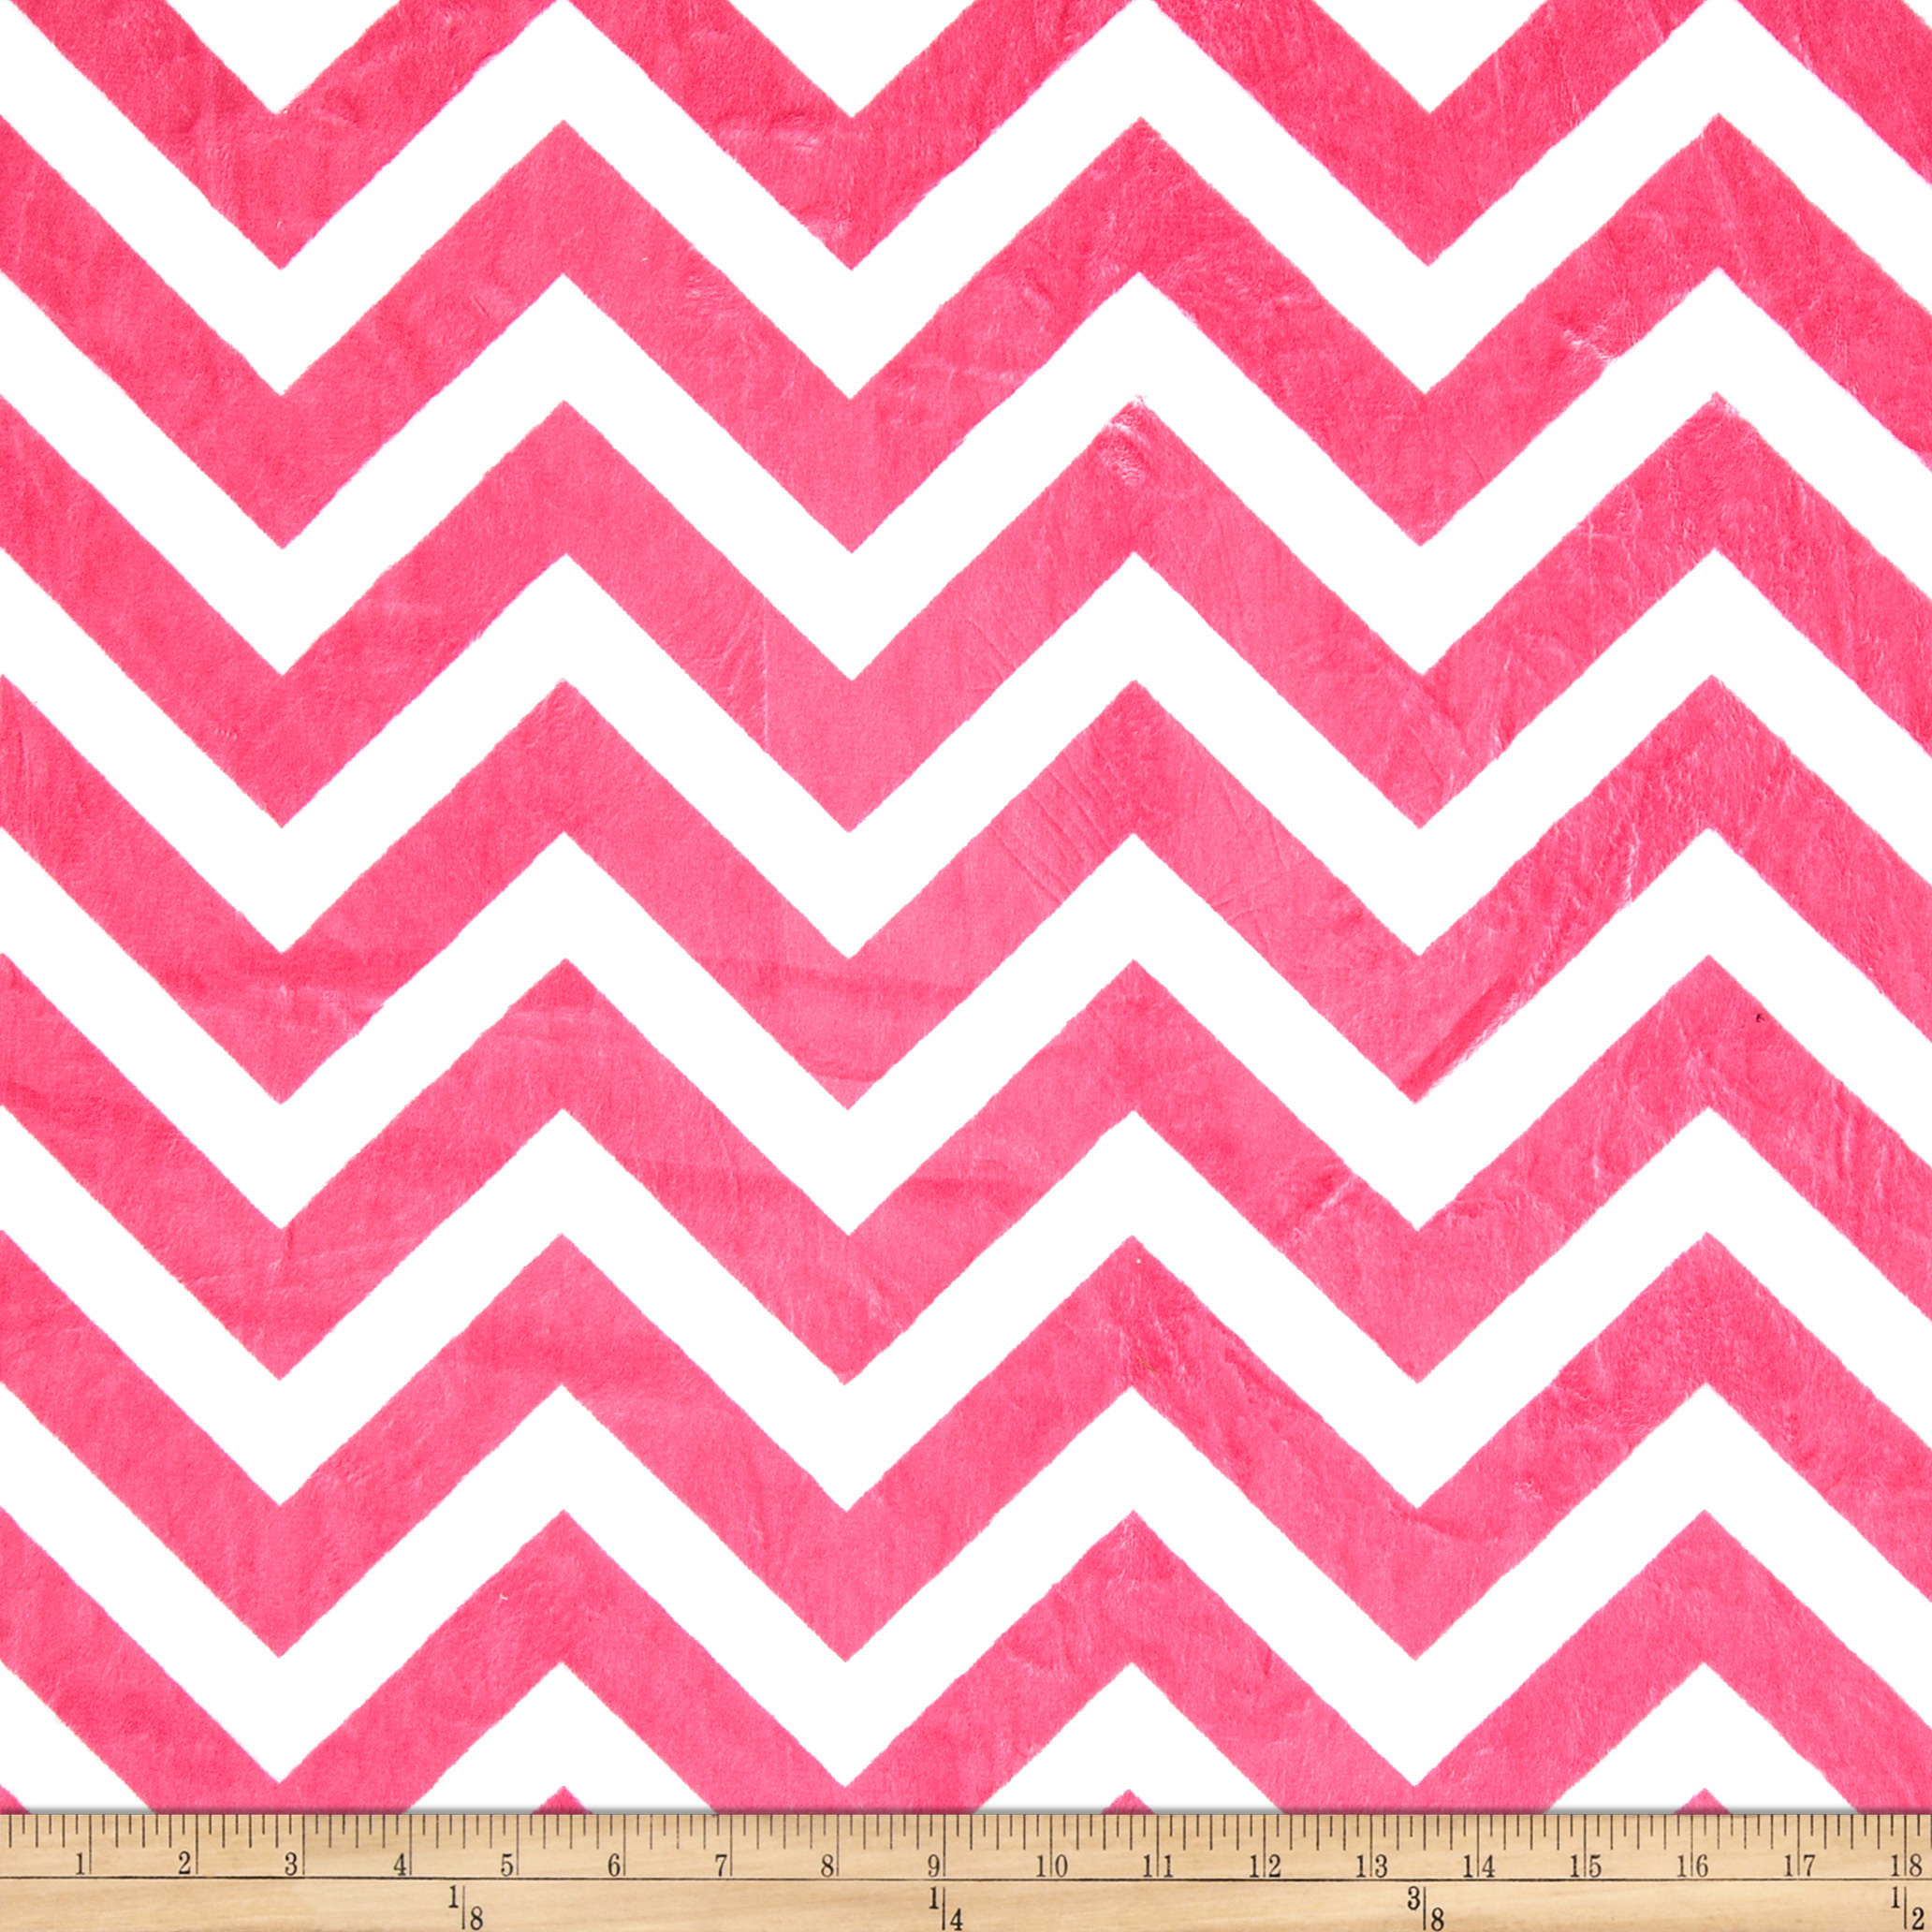 Minky Cuddle Chevron Fuchsia/Snow Fabric